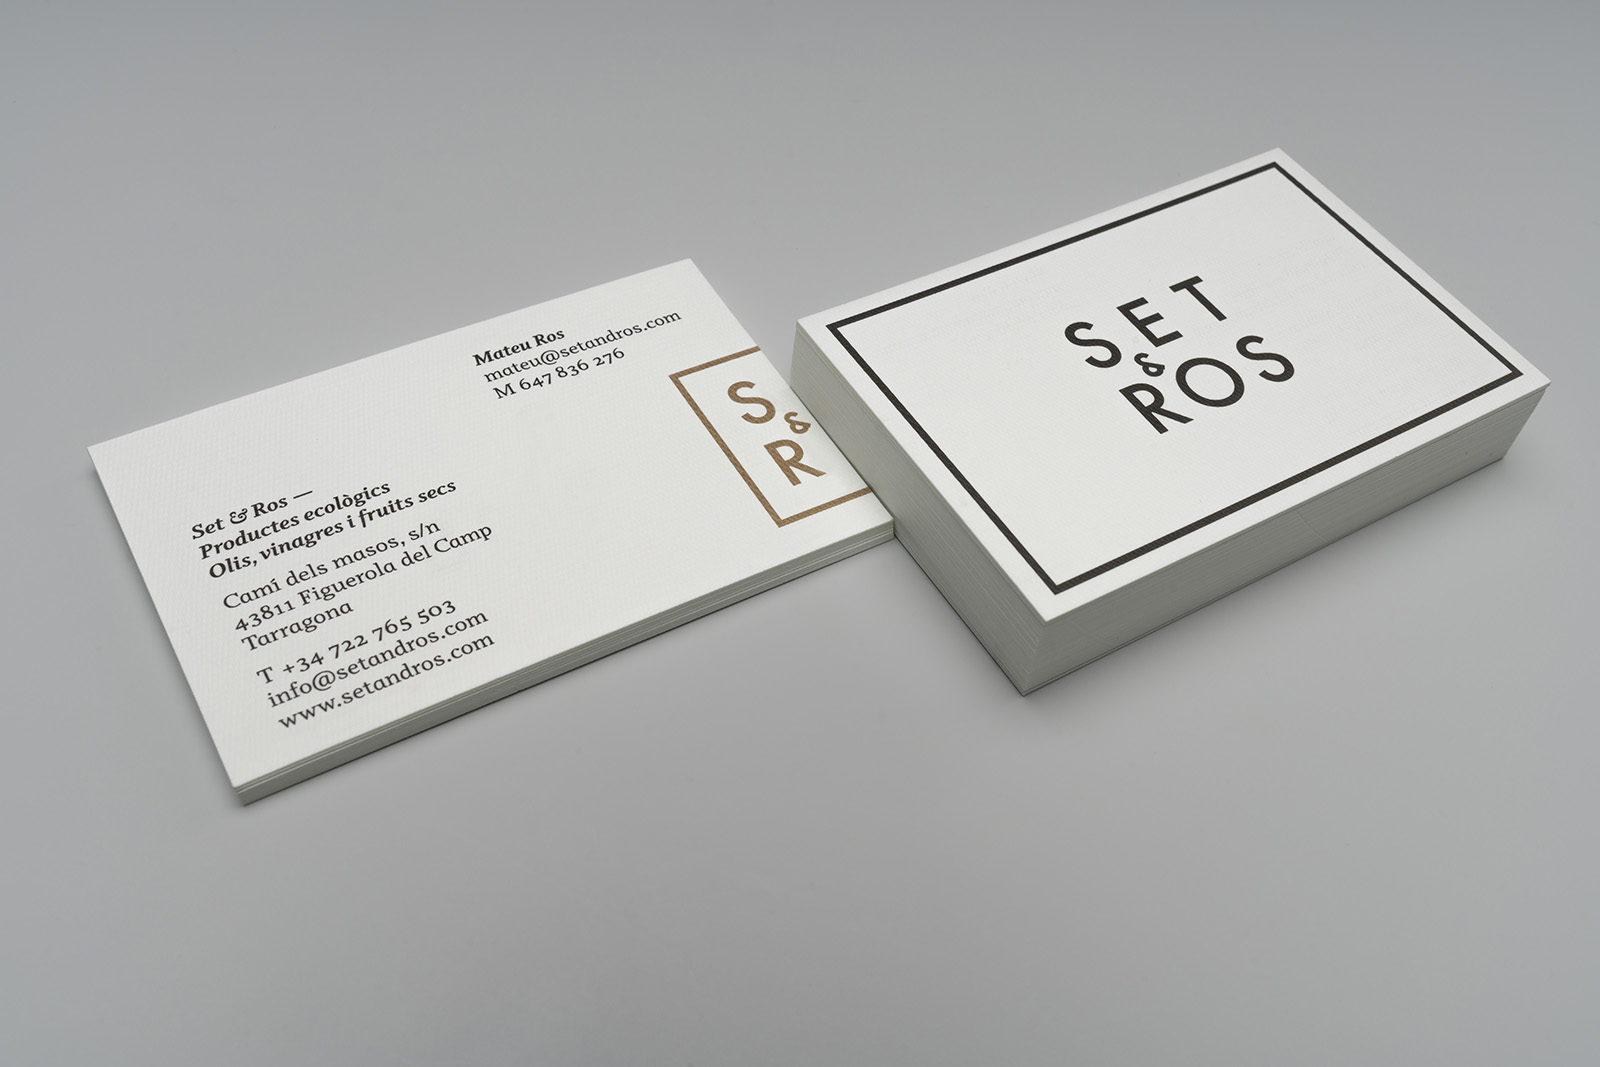 Zoo Studio Business Cards Images - Card Design And Card Template